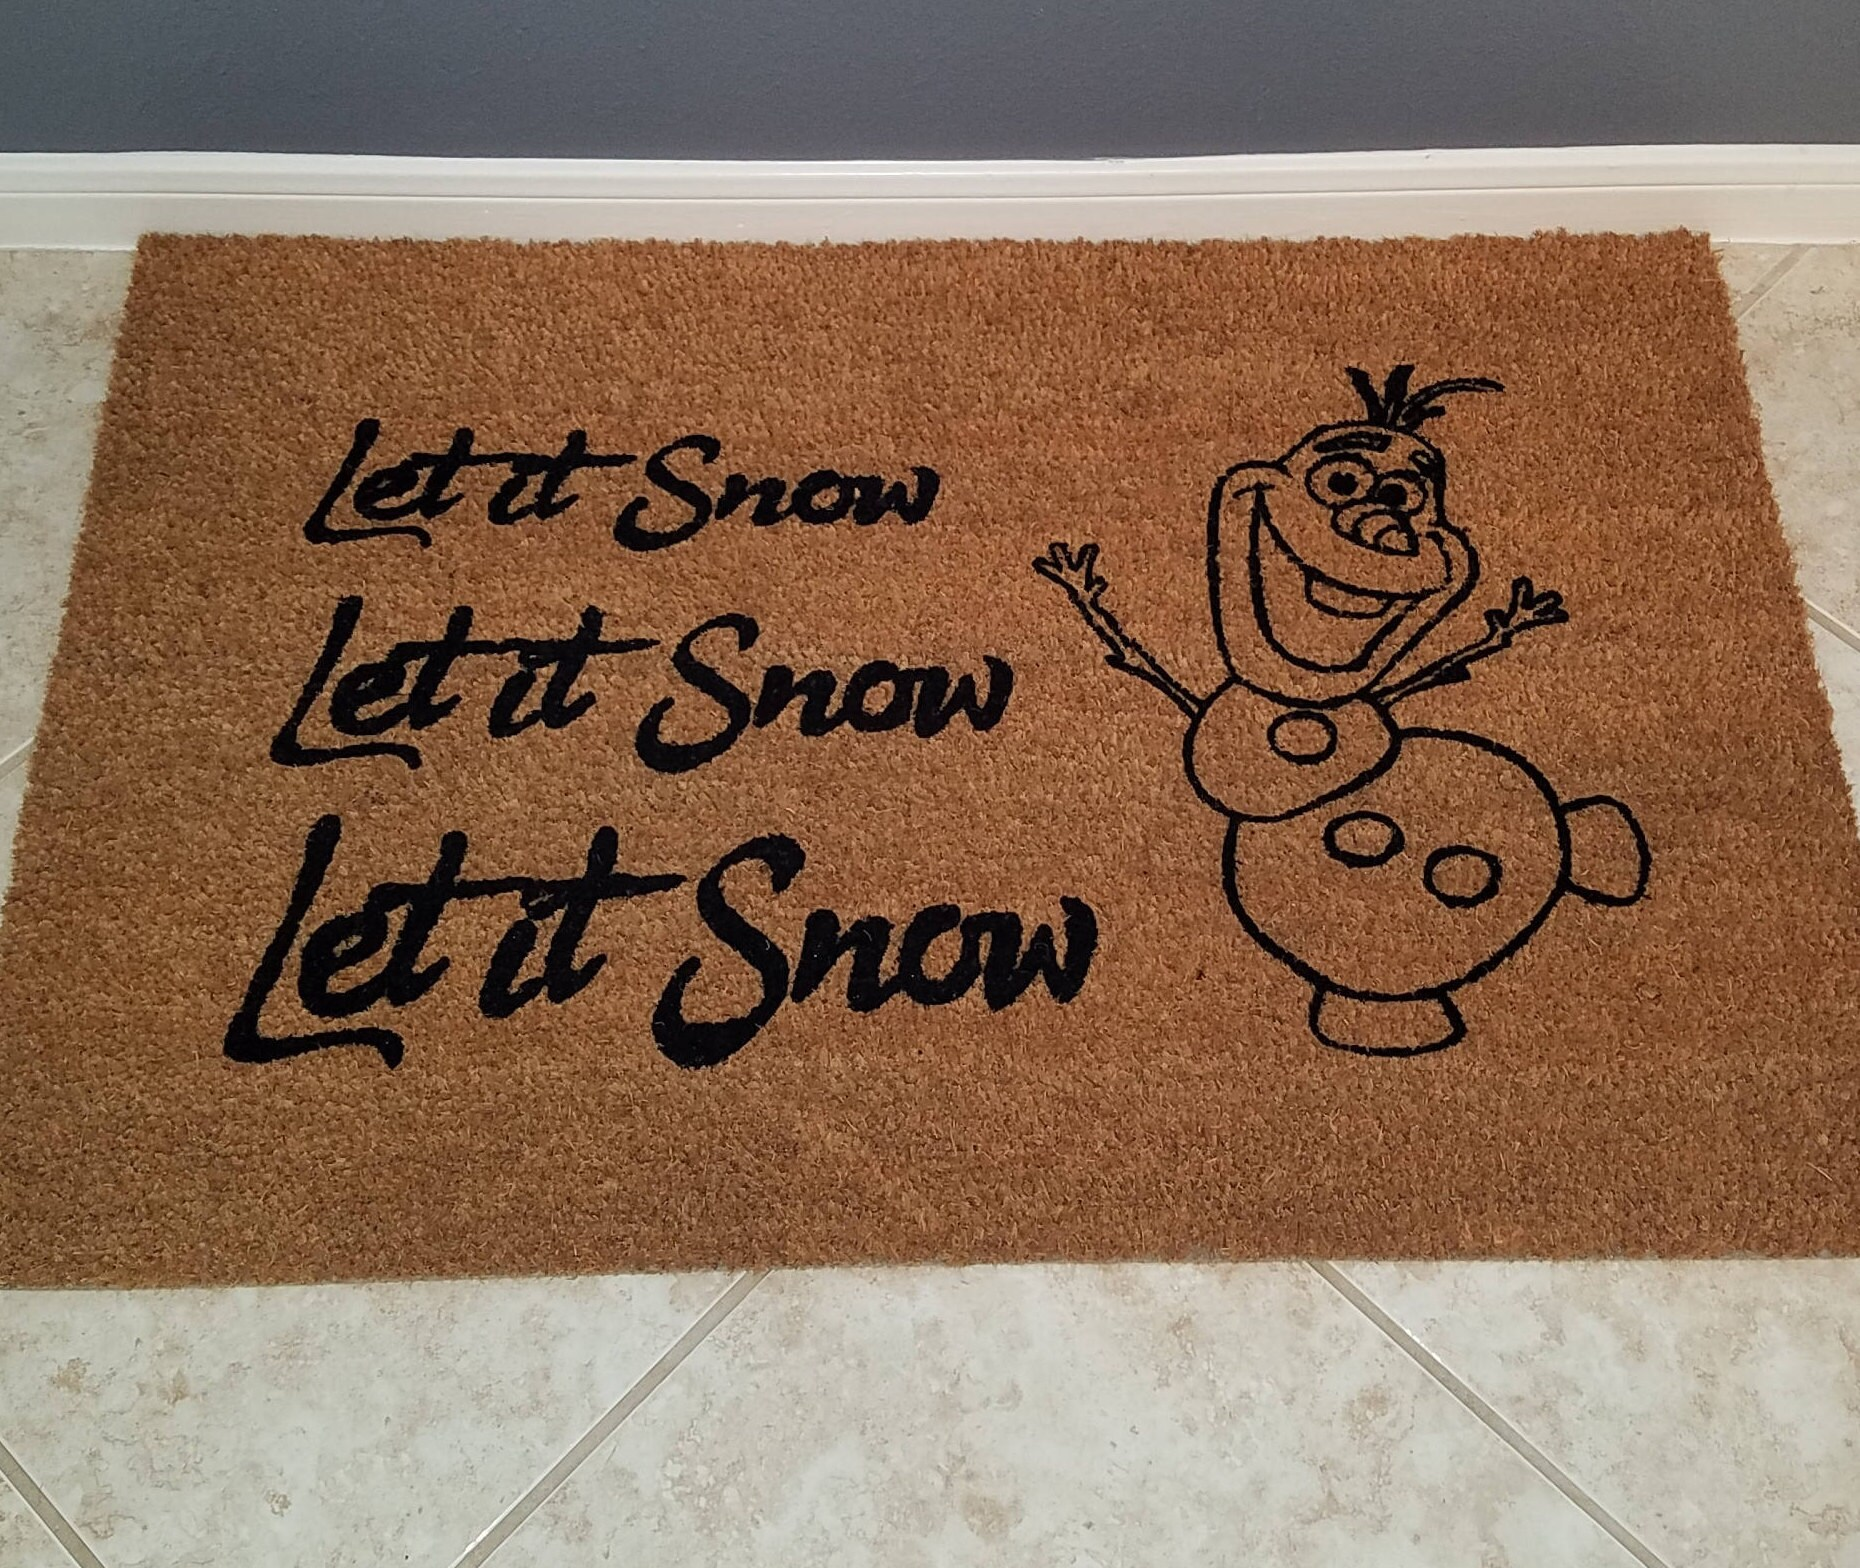 Gentil Christmas Gift / Door Mats / Funny Doormats / Holiday Doormat / Gift Ideas  / Custom Doormat / Personalized Doormat / Holiday Decor / Olaf